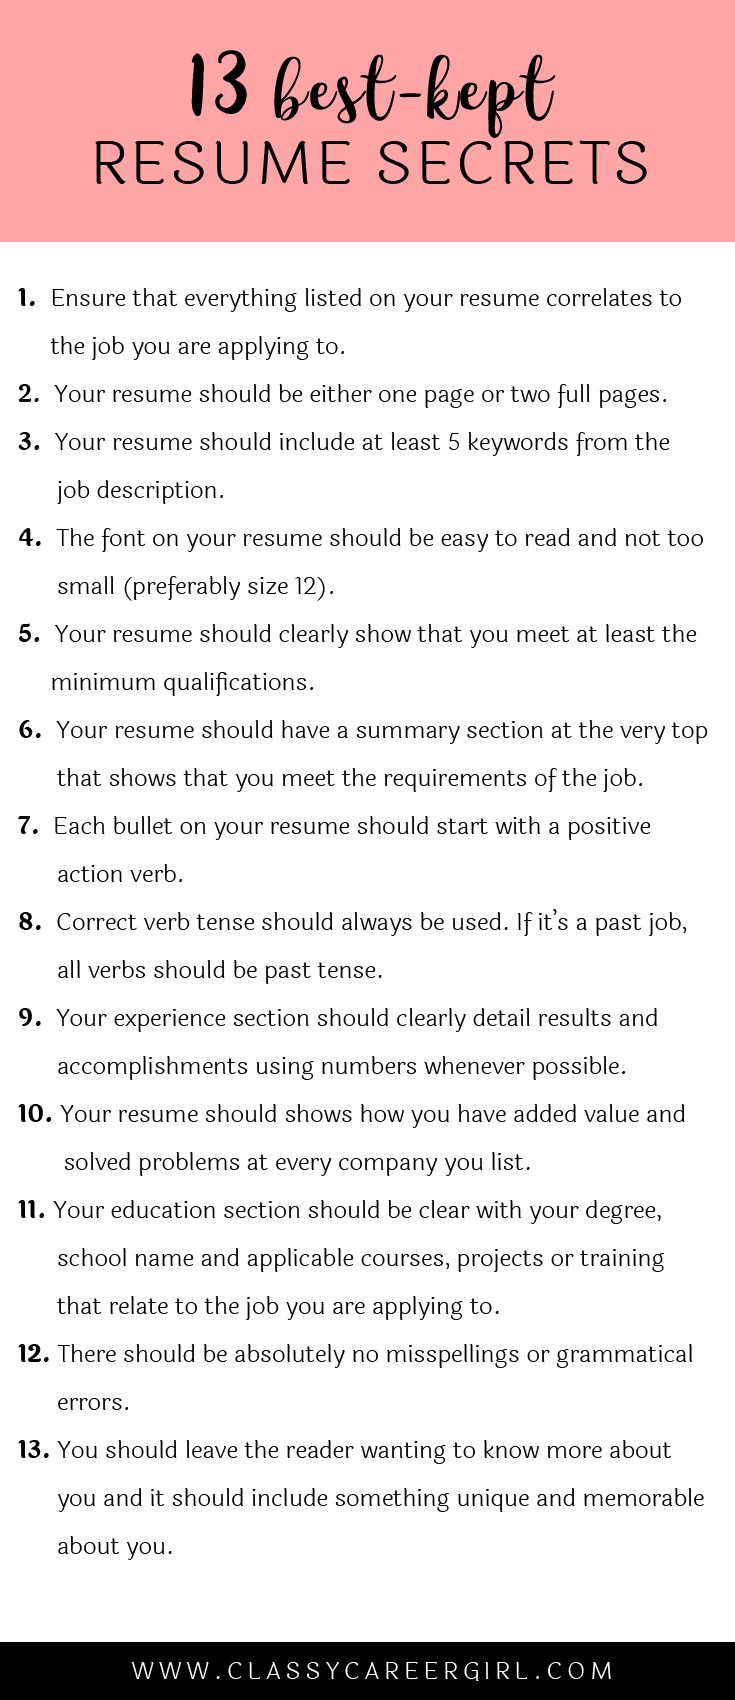 Opposenewapstandardsus  Picturesque  Ideas About Resume On Pinterest  Cv Format Resume Cv And  With Great Some Hiring Managers Will Toss Your Resume Out If You Dont Know These  With Comely Associates Degree Resume Also Key Holder Resume In Addition Technical Program Manager Resume And Resume General Objective As Well As Science Resumes Additionally Prepare A Resume From Pinterestcom With Opposenewapstandardsus  Great  Ideas About Resume On Pinterest  Cv Format Resume Cv And  With Comely Some Hiring Managers Will Toss Your Resume Out If You Dont Know These  And Picturesque Associates Degree Resume Also Key Holder Resume In Addition Technical Program Manager Resume From Pinterestcom